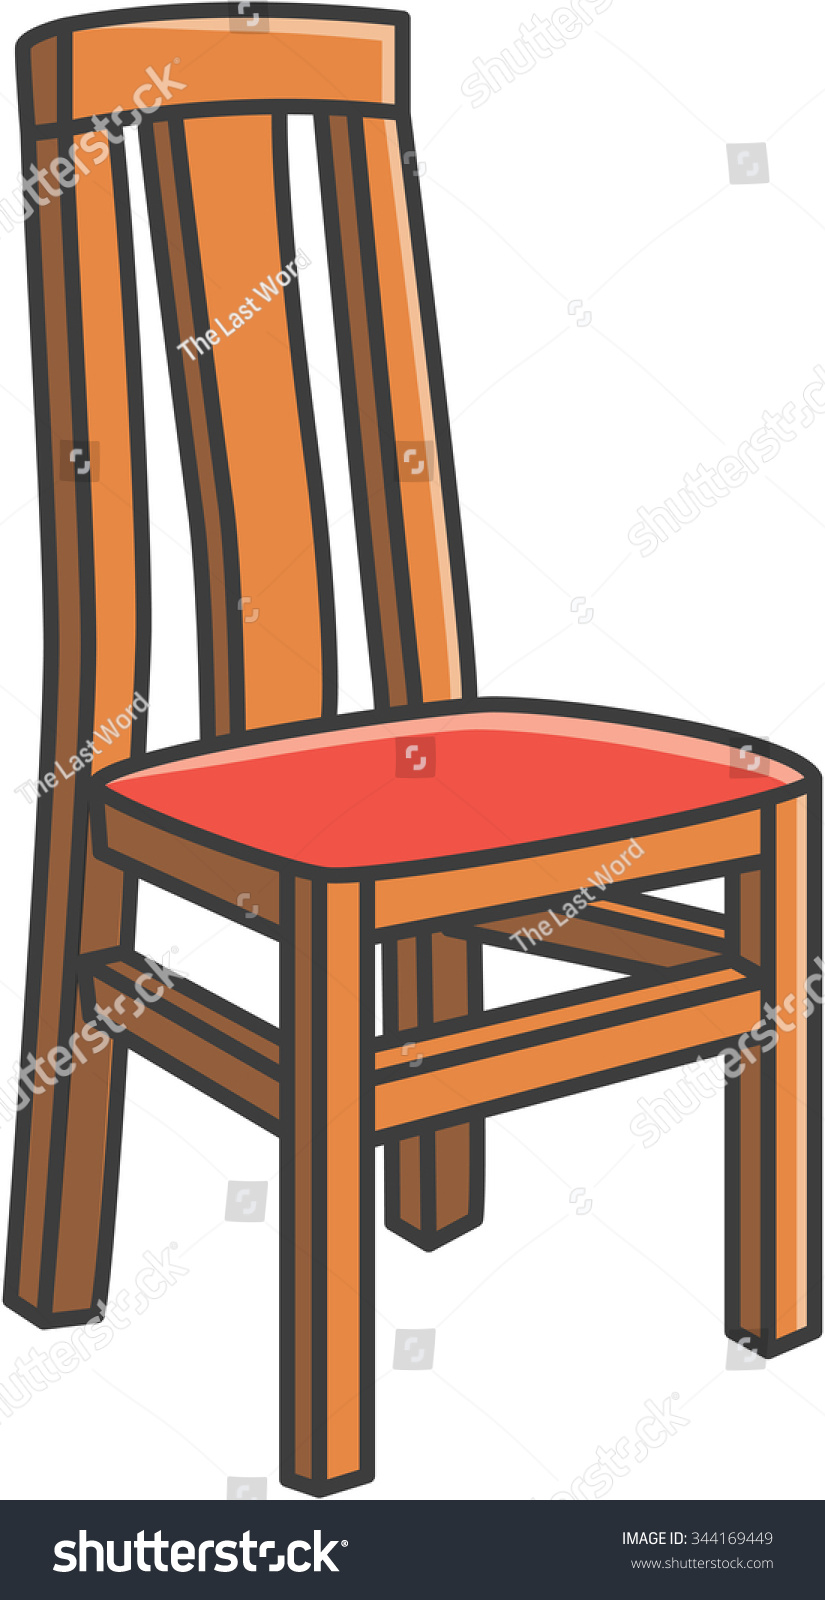 Cartoon kitchen table - Cartoon Dining Room Chair Jpg 825x1600 Cartoon Dinner Chair